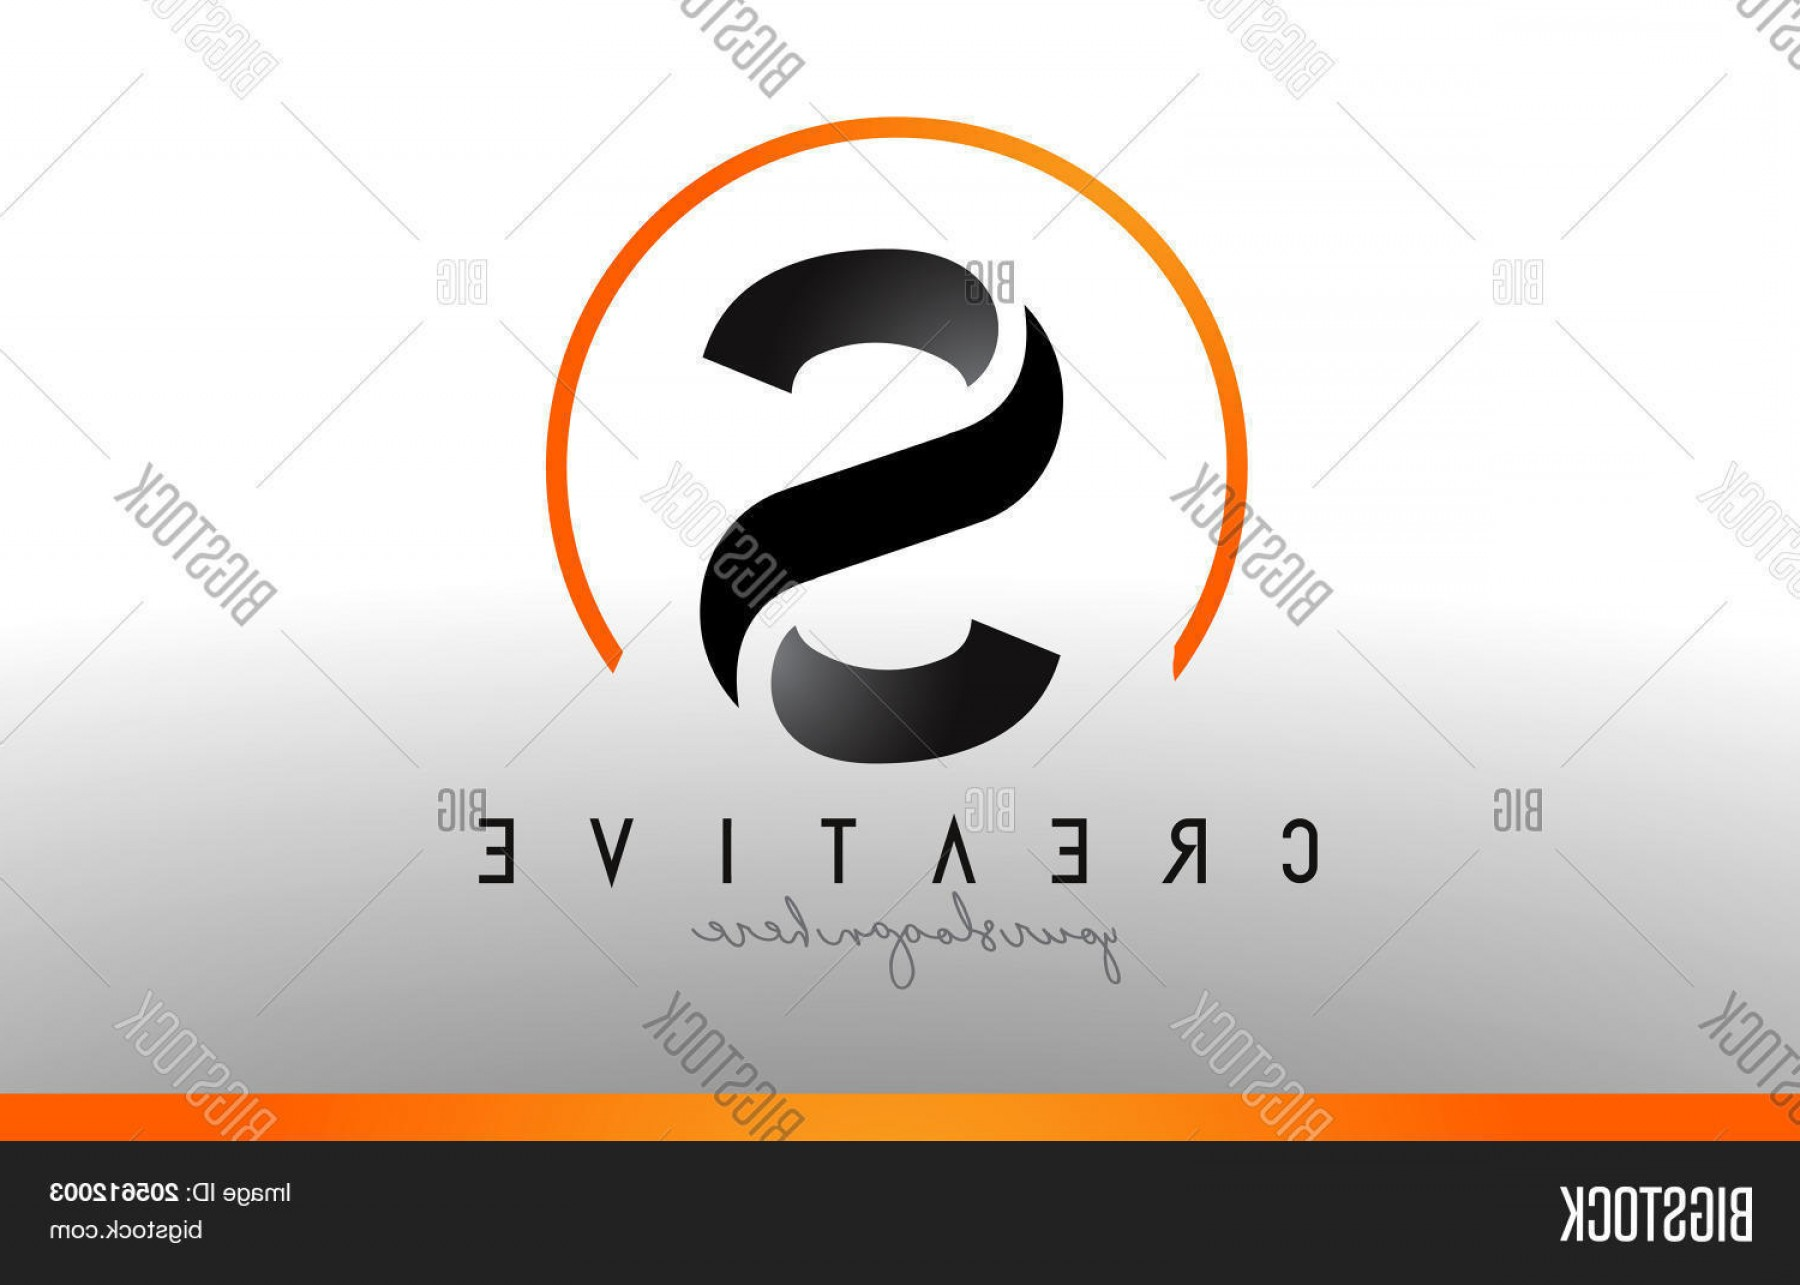 Cool Logo Icon Vector: Stock Vector S Letter Logo Design With Black Orange Color Cool Modern Icon Template